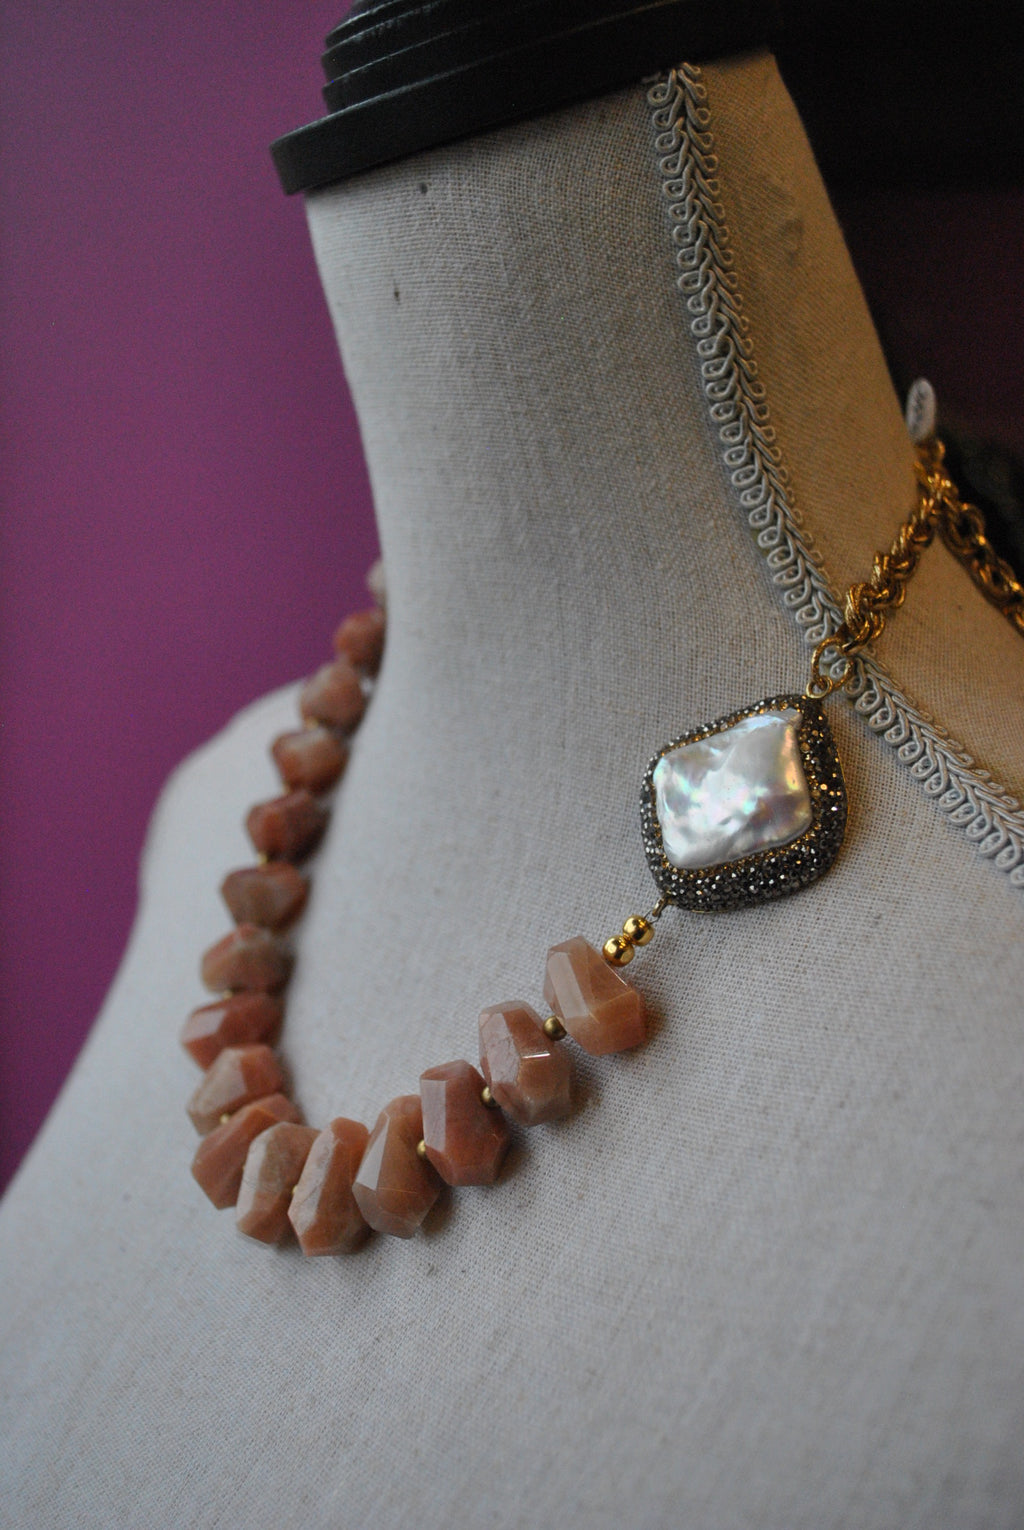 ORANGE SUNSTONE AND MOTHER OF PEARLS WITH SWAROVSKI CRYSTALS ASYMMETRIC NECKLACE